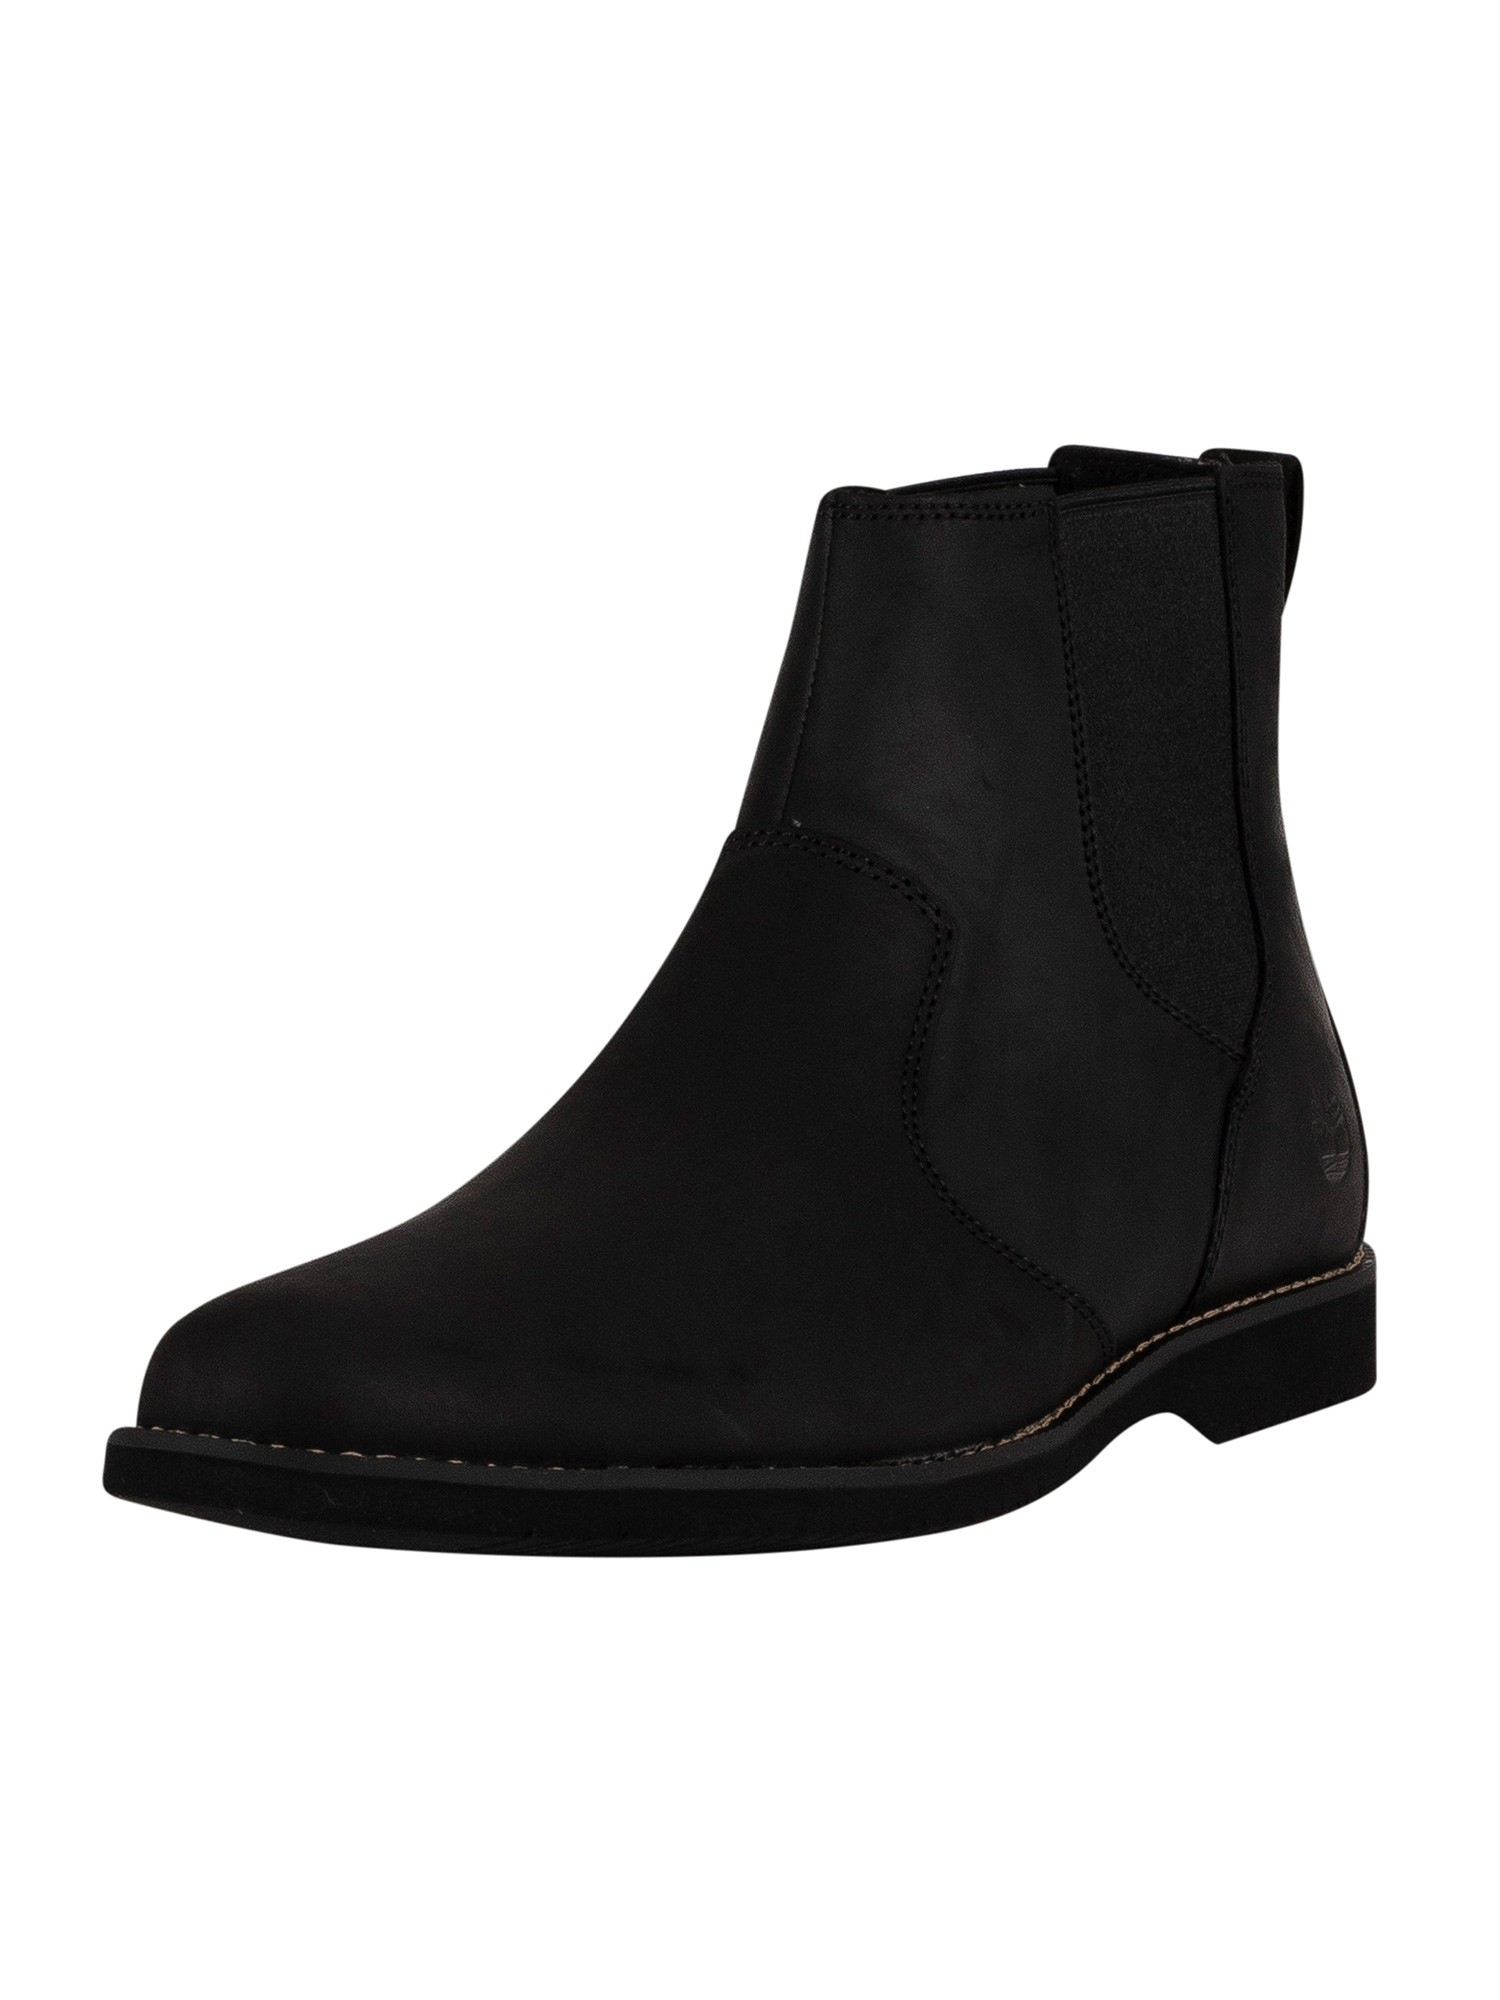 Woodhull Leather Chelsea Boots